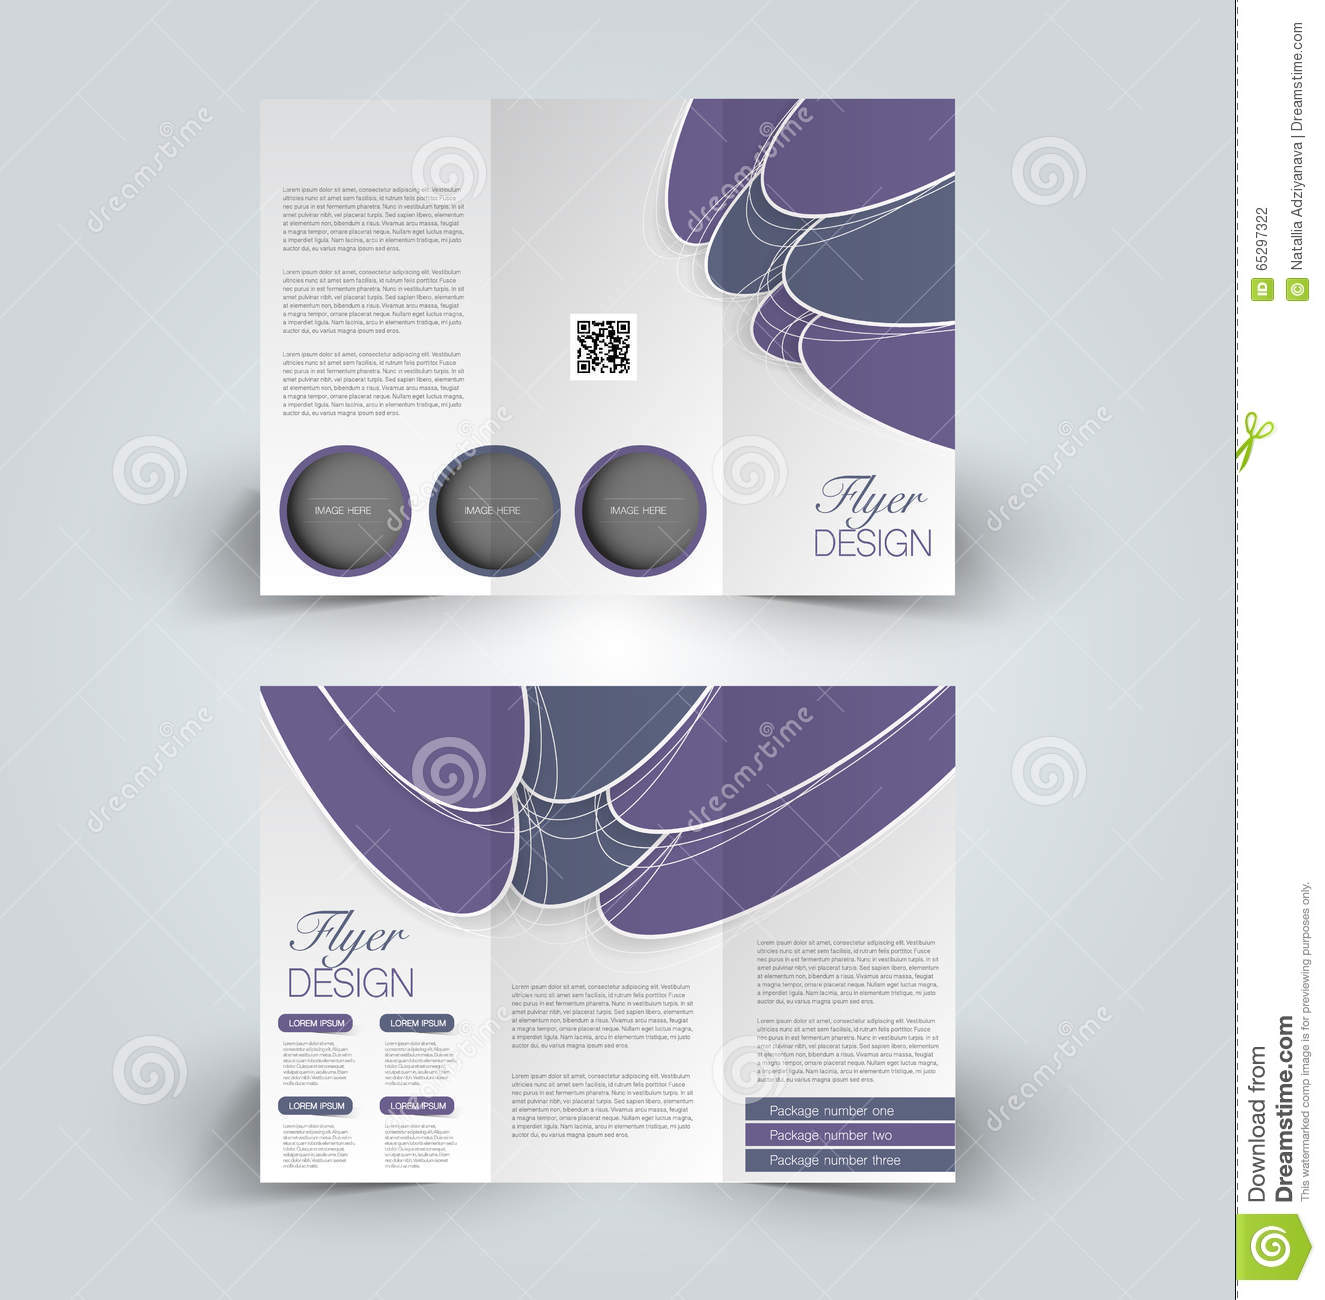 Brochure mock up design template for business education for Booklet brochure template